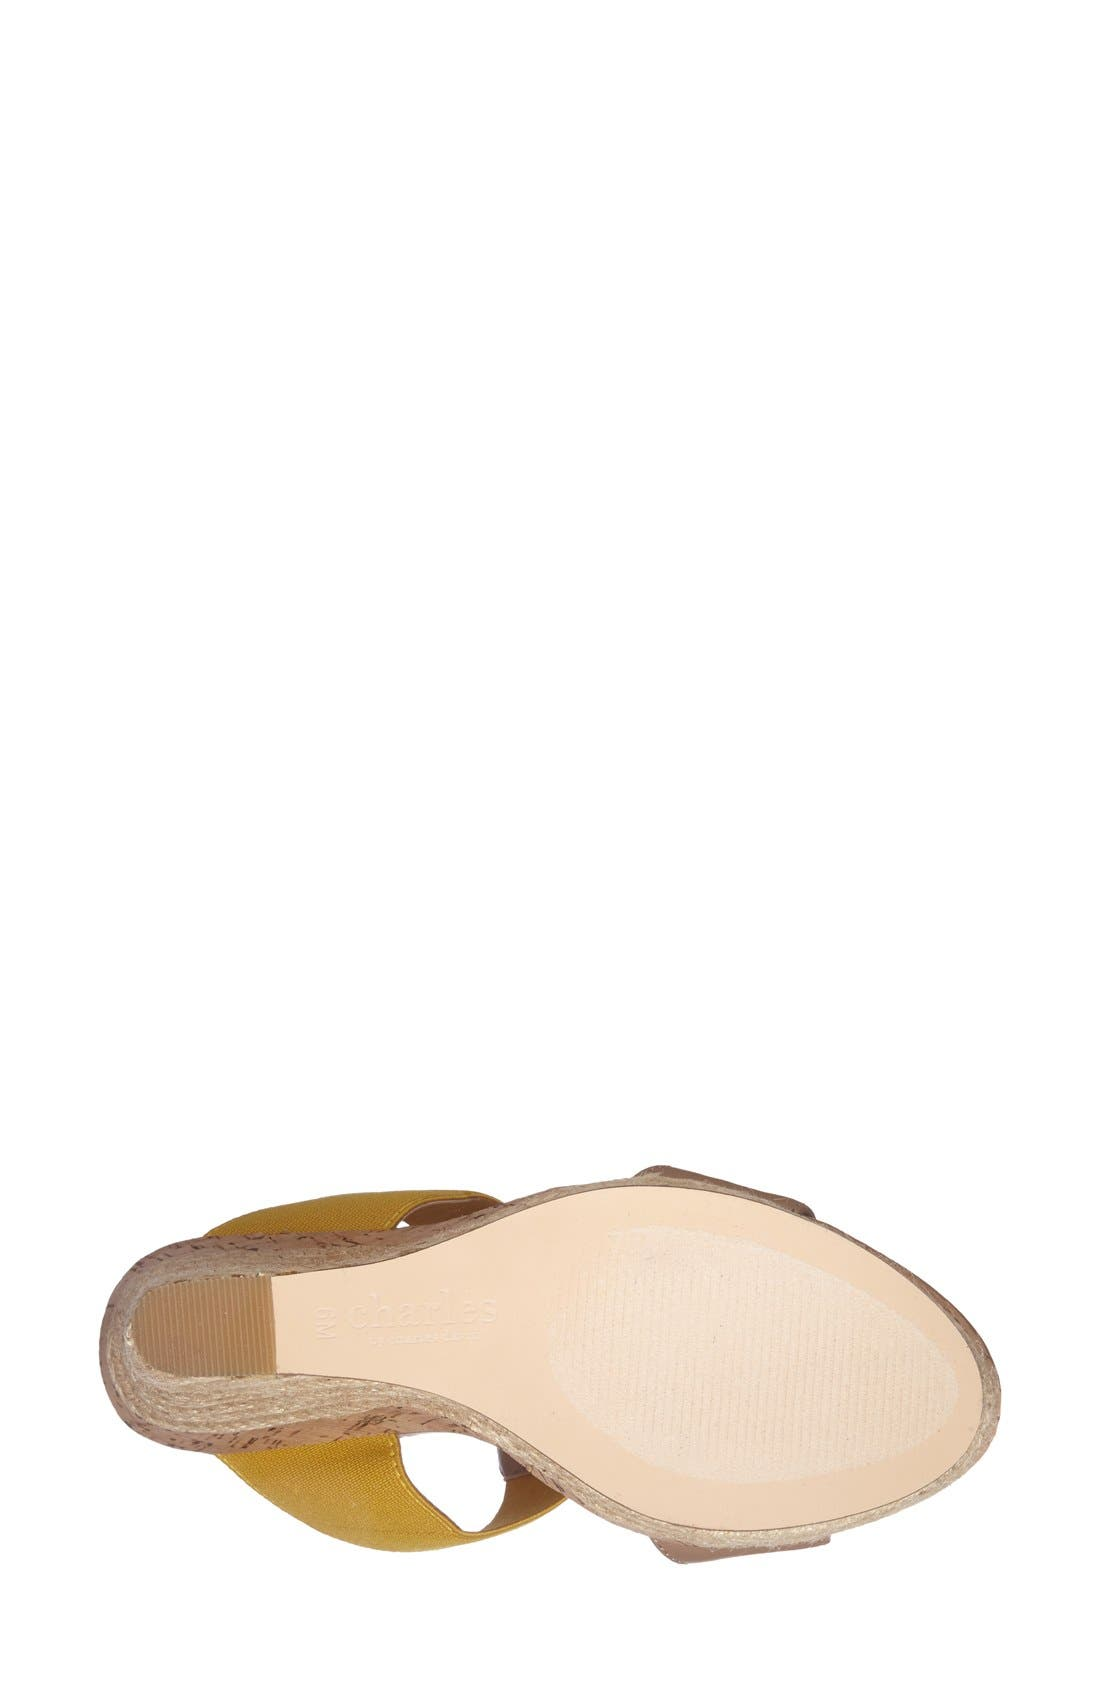 Alternate Image 4  - Charles by Charles David 'Alto' Espadrille Wedge Sandal (Women)